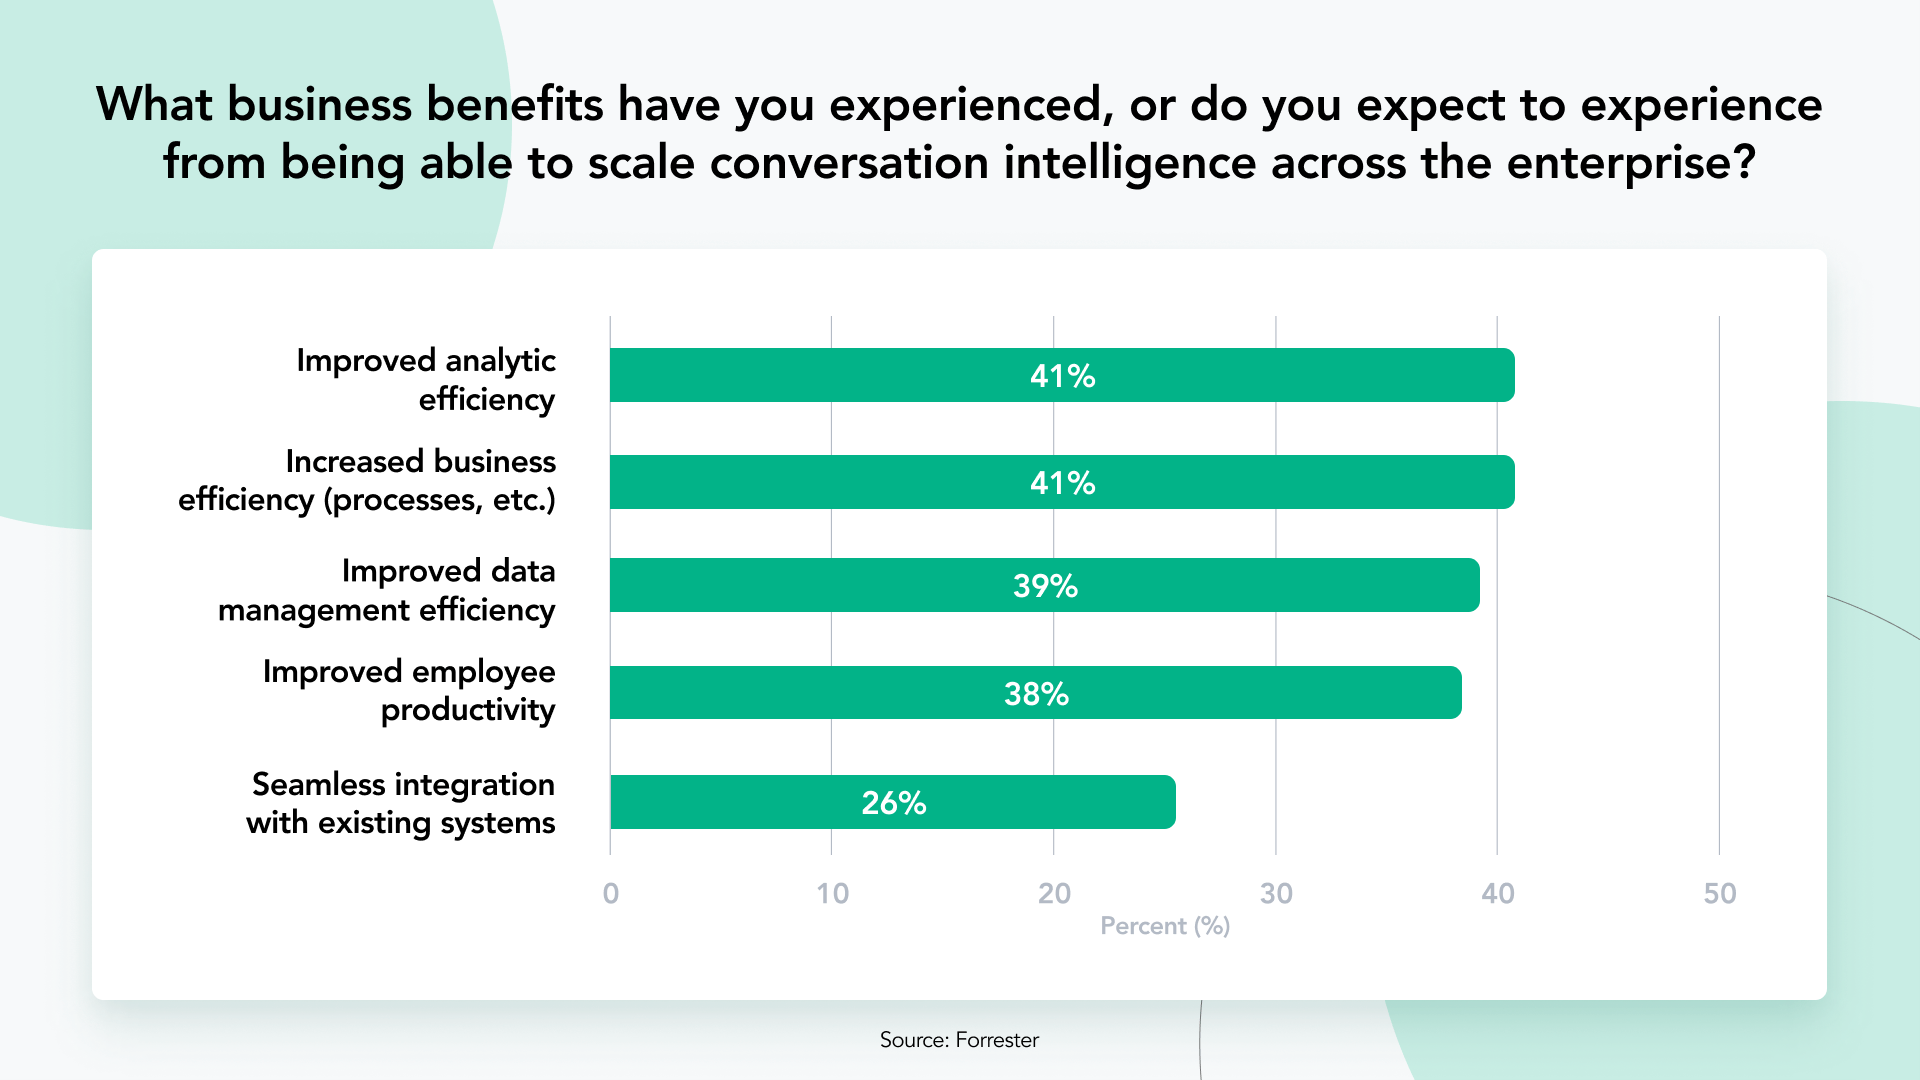 The business benefits marketers expect to experience from using conversation intelligence across the enterprise